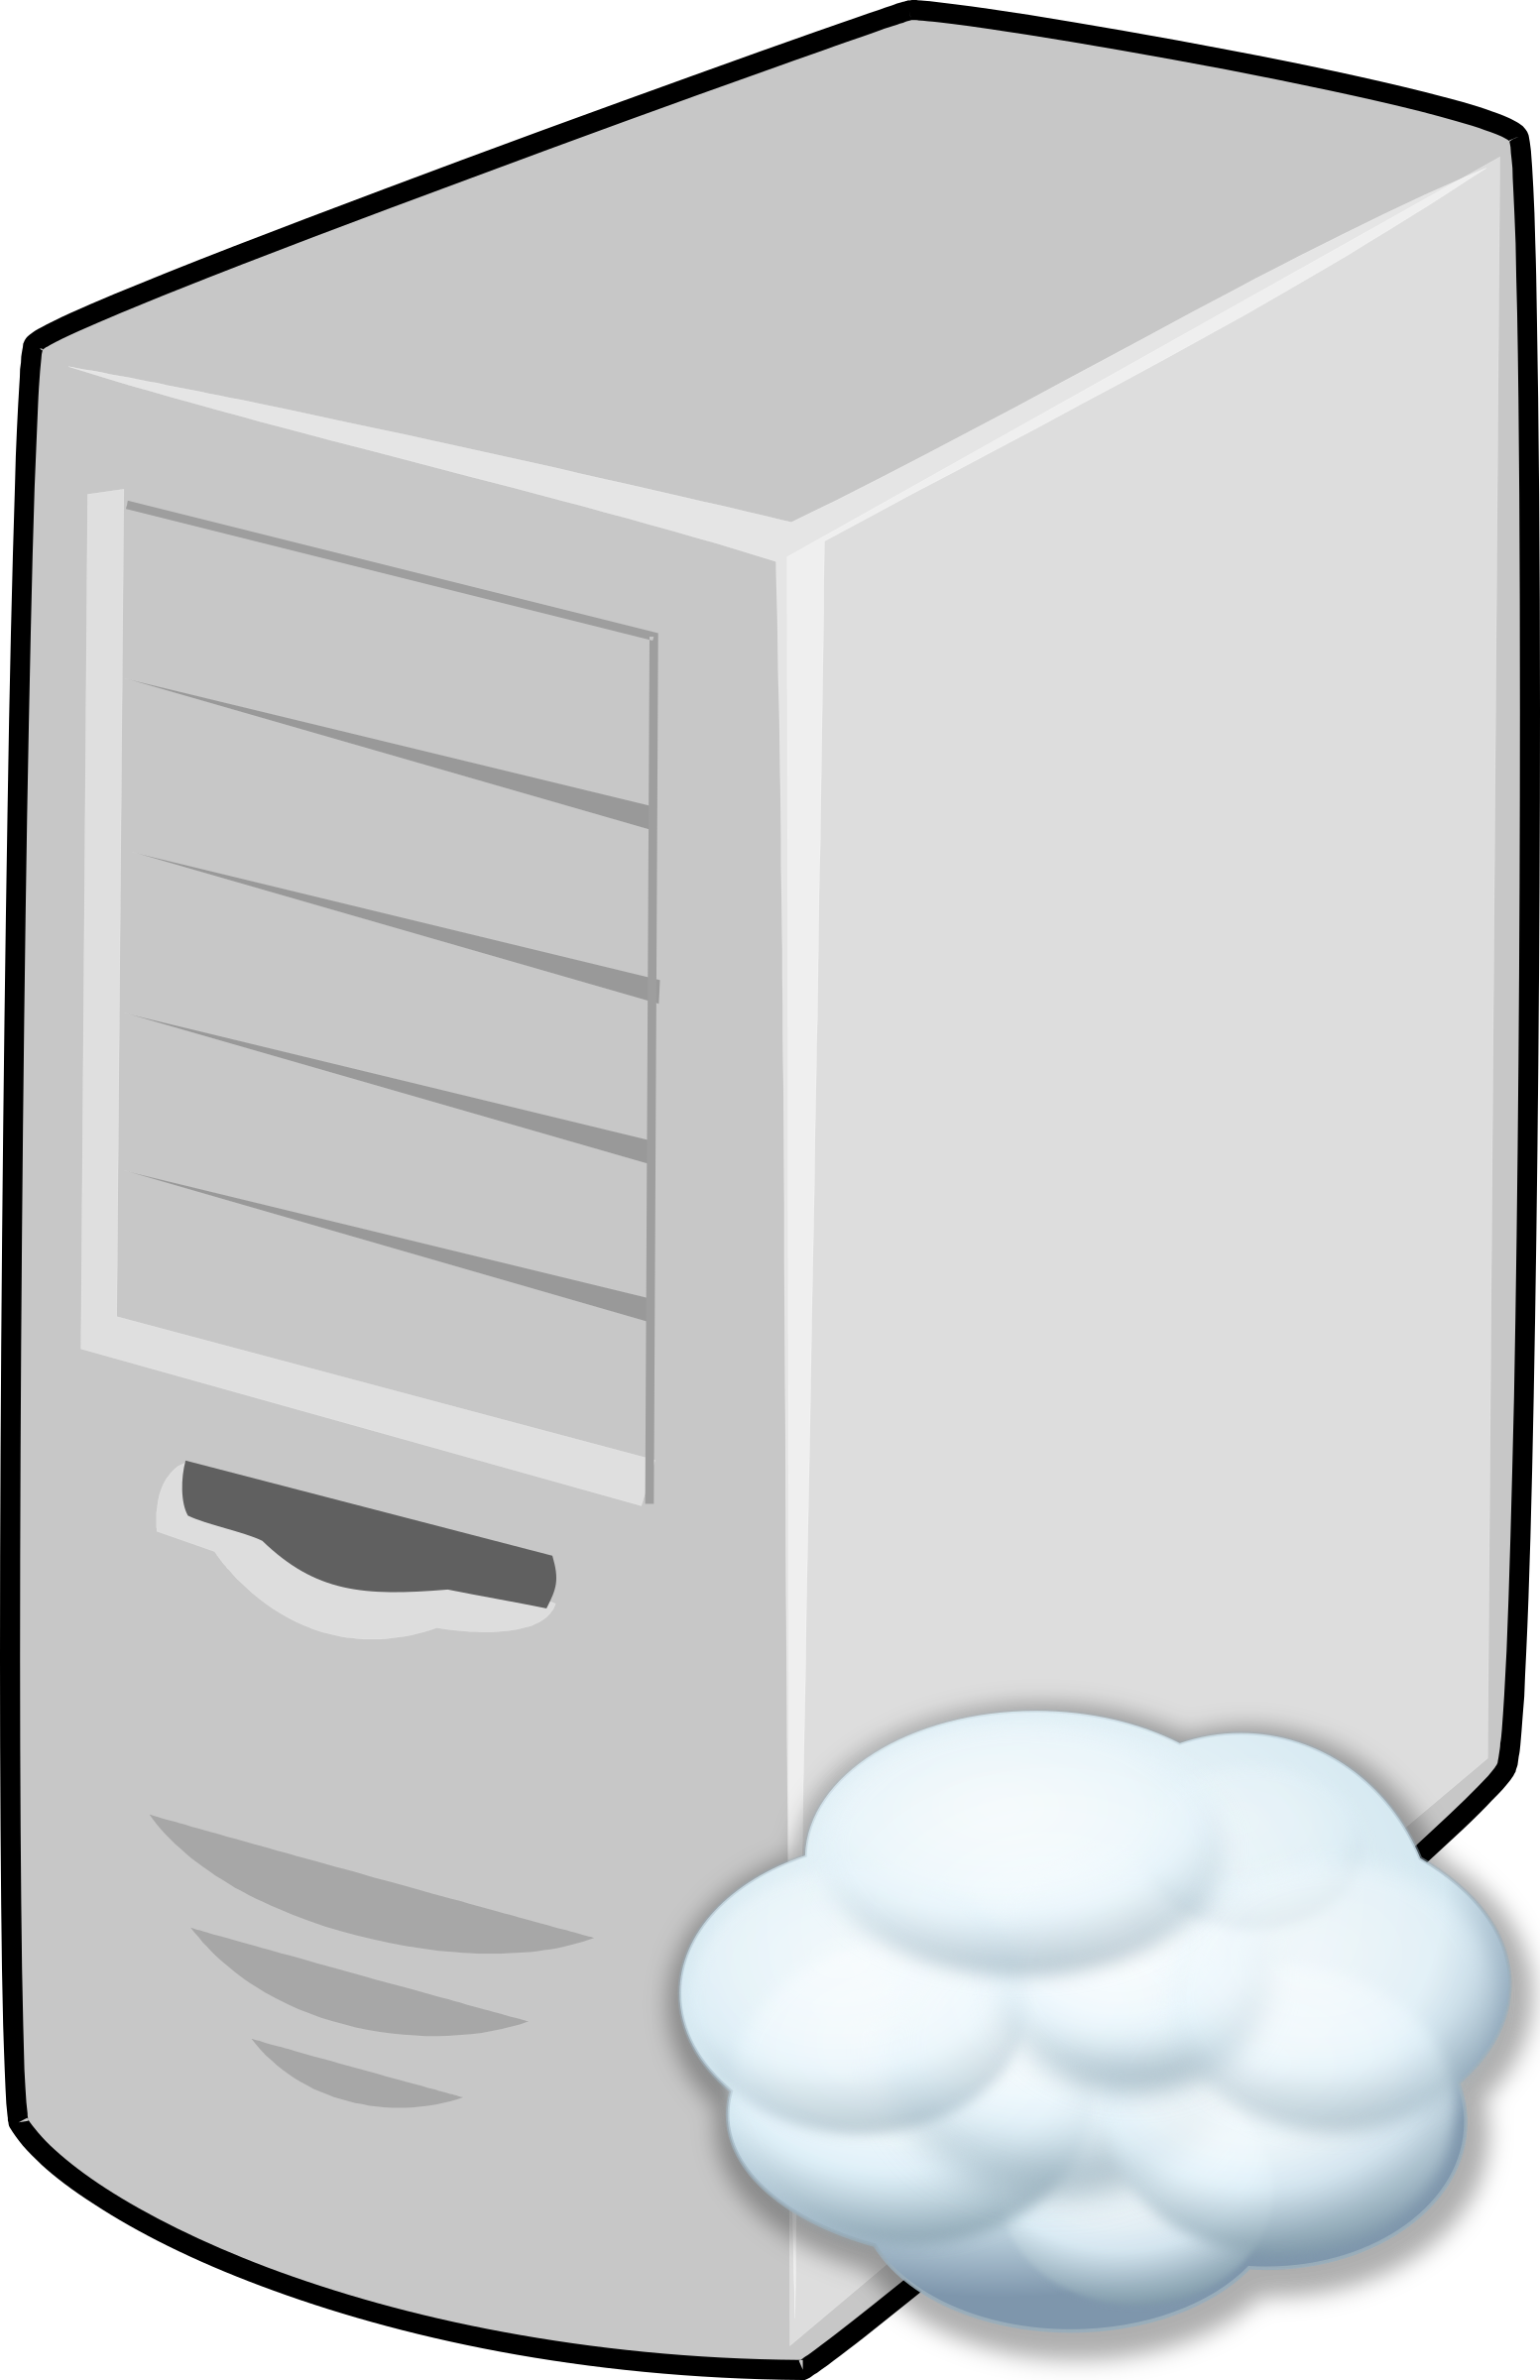 Server icons png. Clipart cloud big image